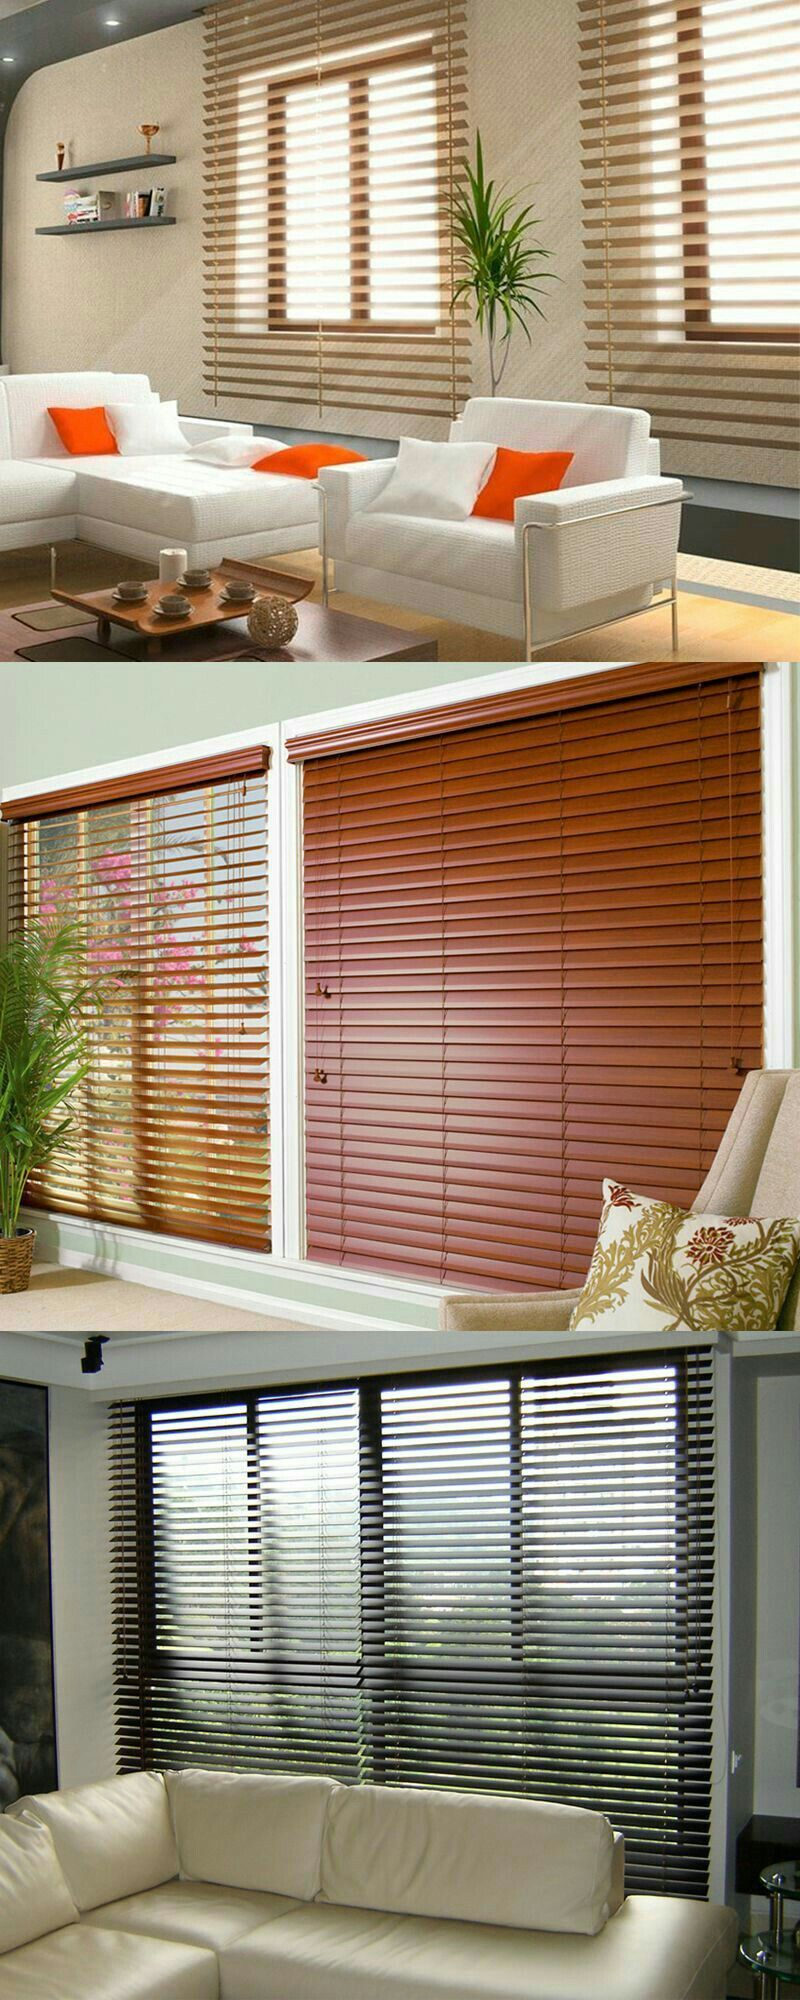 wondrous tricks ikea bamboo blinds patio blinds room dividers